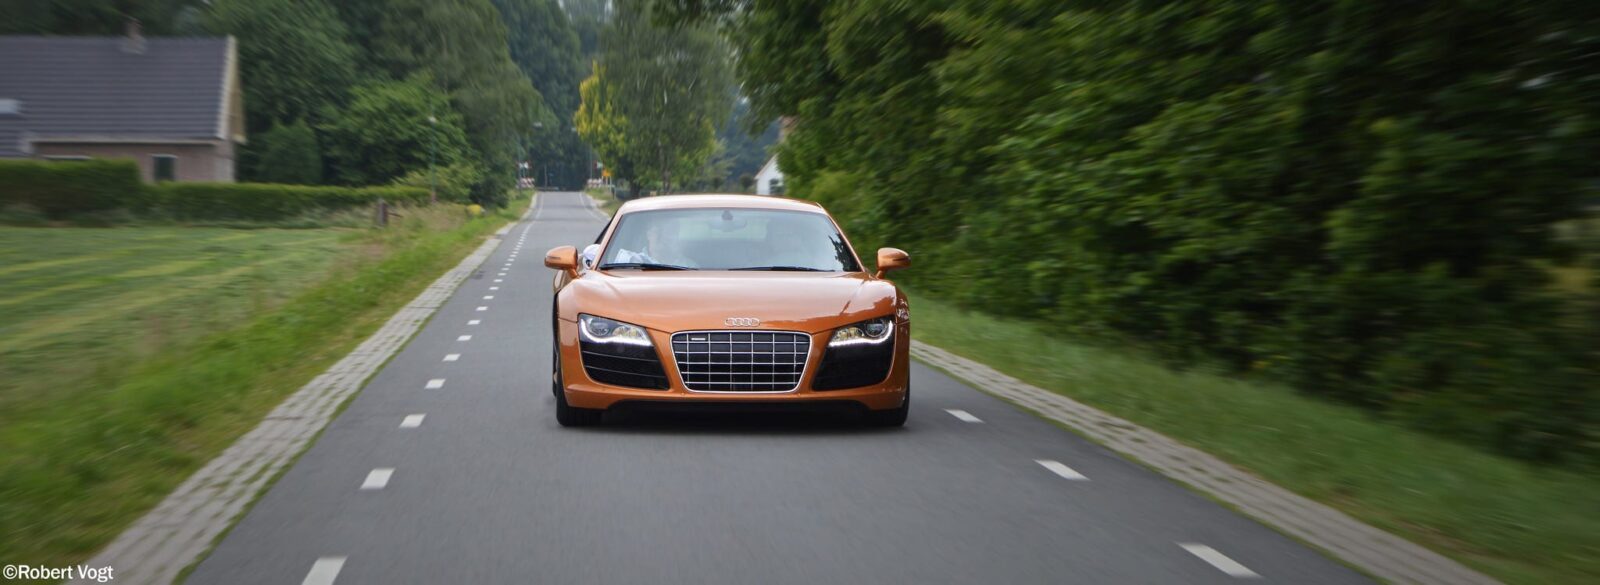 2015 Audi R8 V10 Plus widescreen High Quality wallpapers